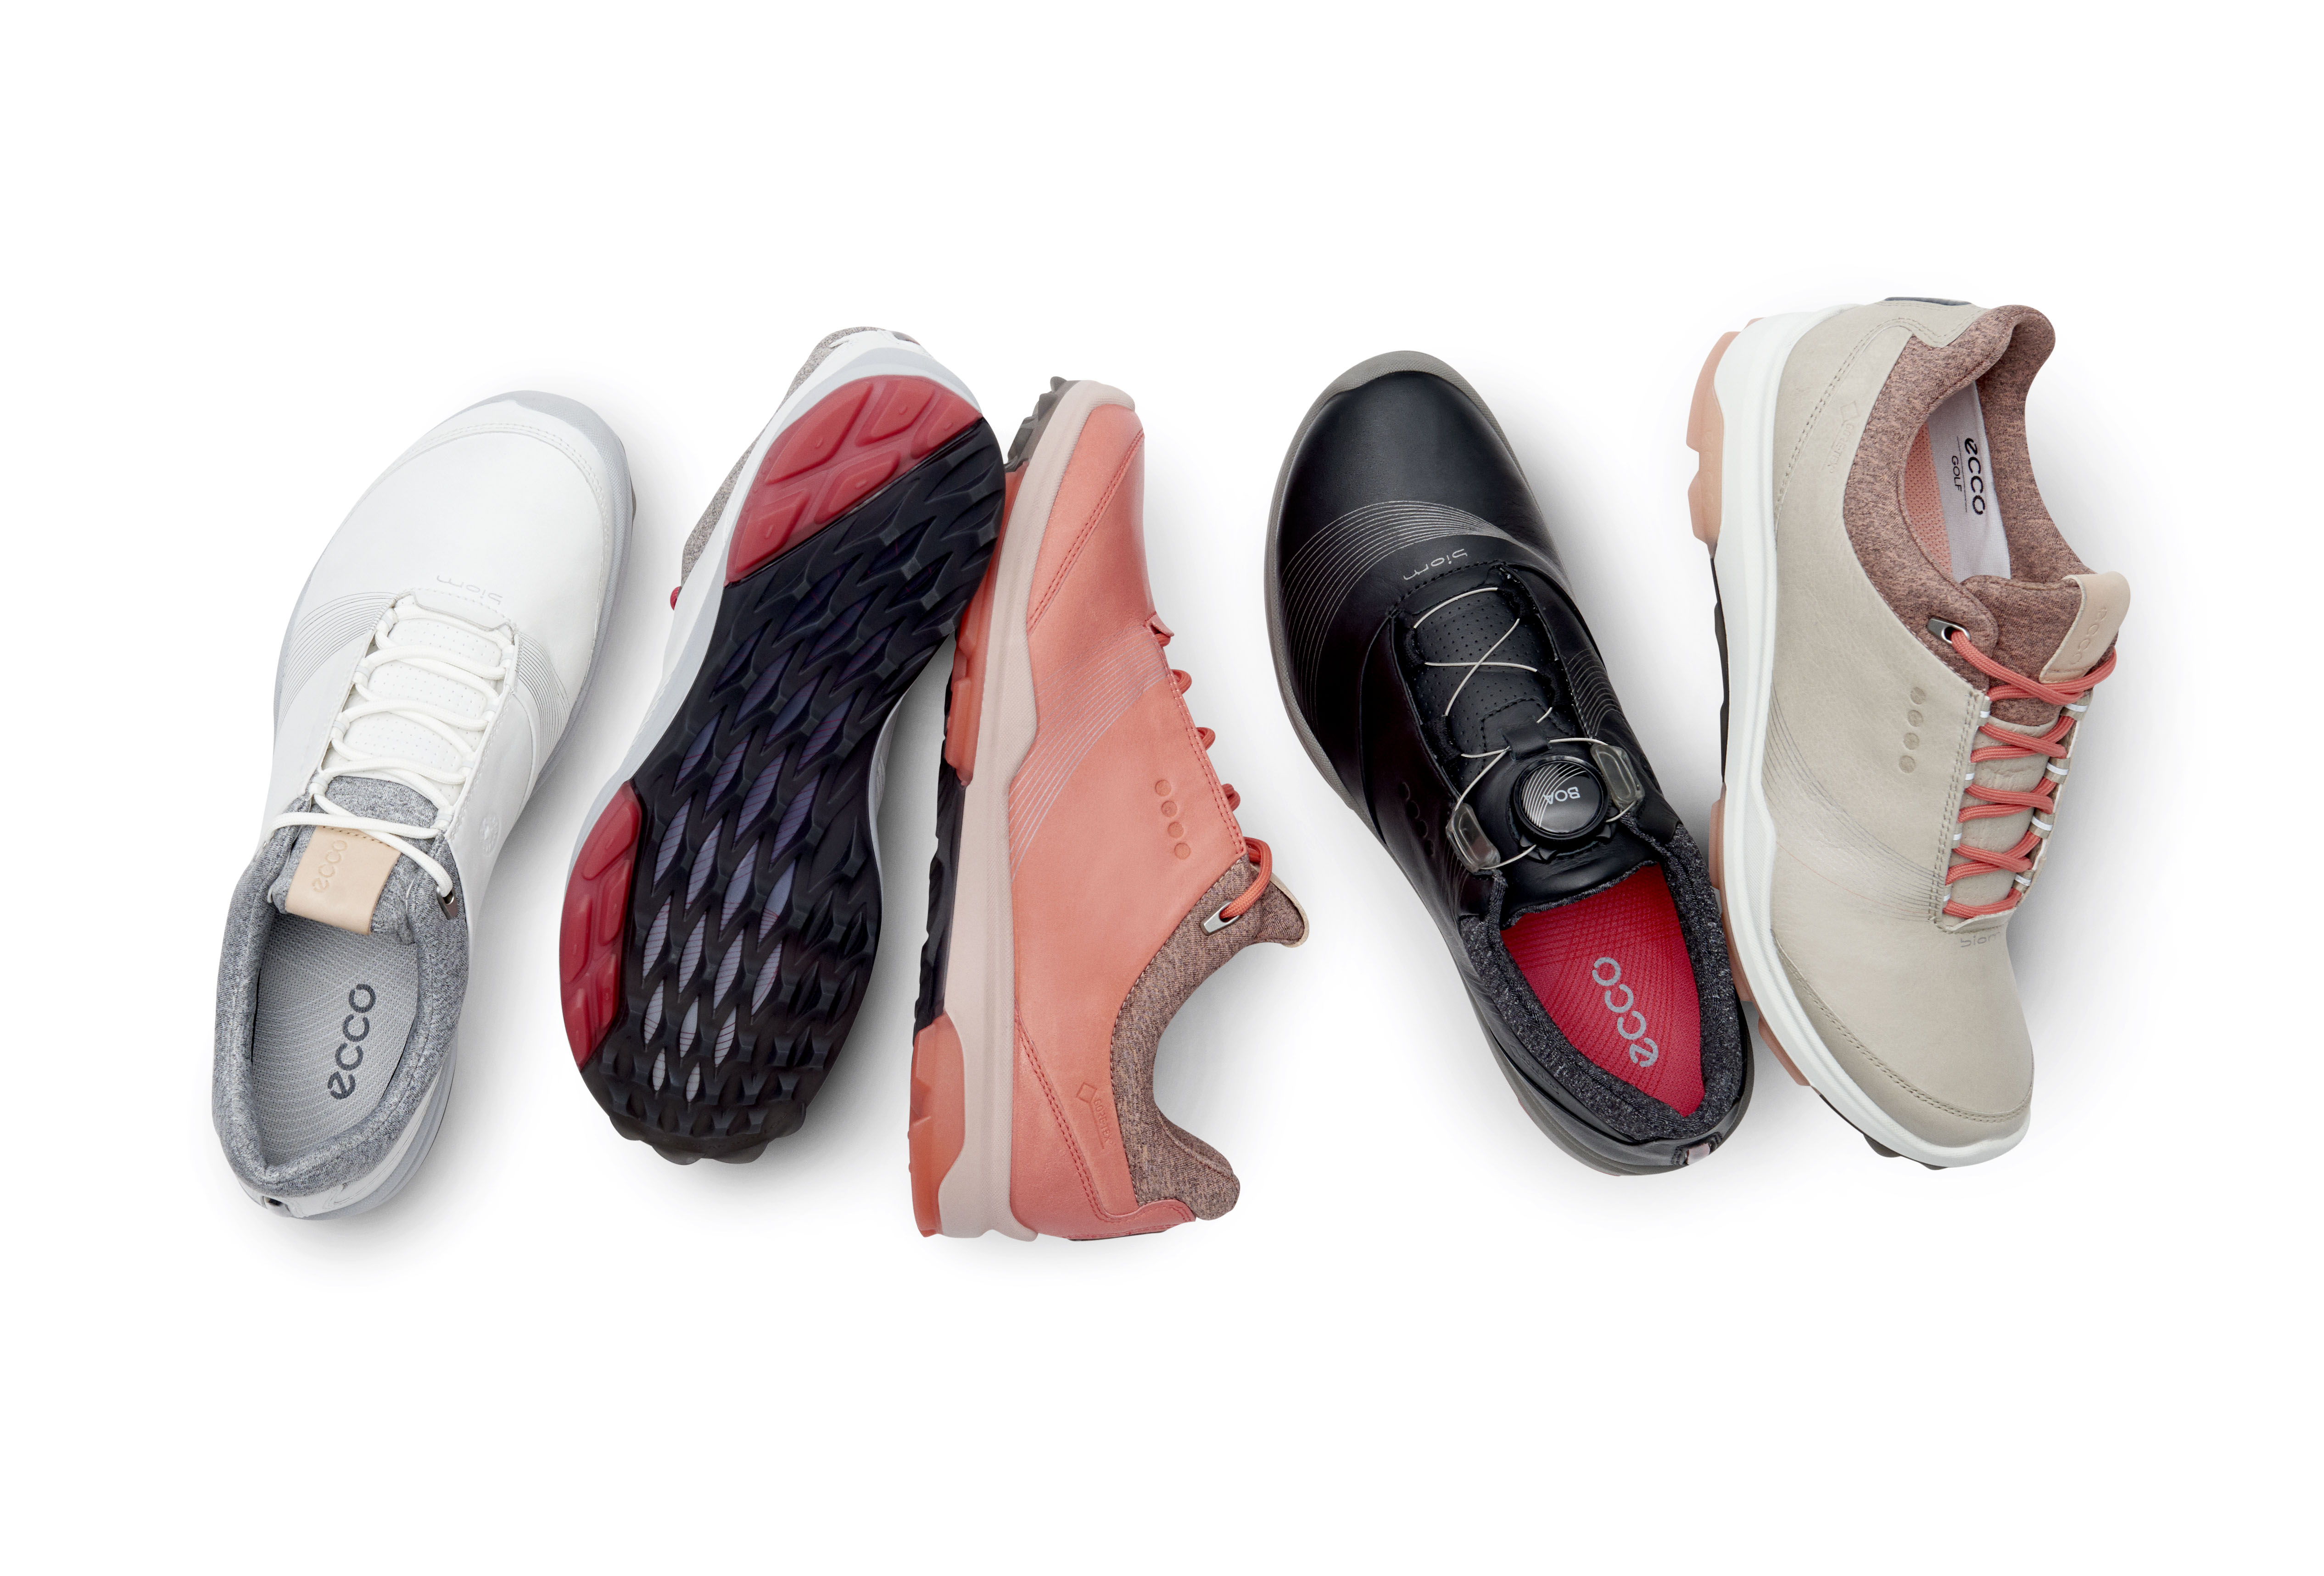 f2c02466ccb8 ECCO launches women s Biom Hybrid 3 golf shoe